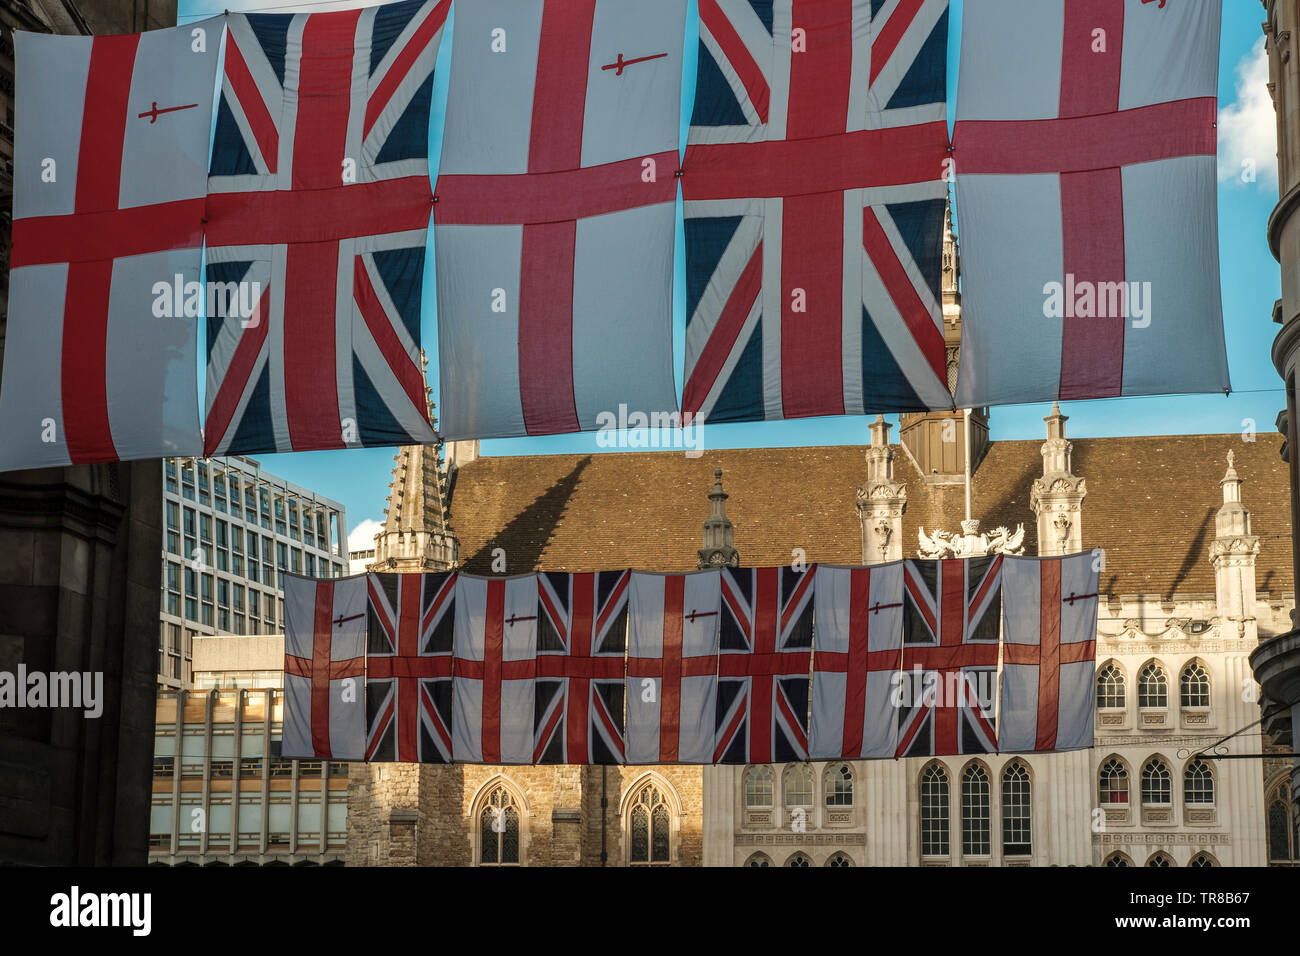 Englisch Fahnen auf Guidhall, London's Ancient Town Hall, London, UK Stockfoto